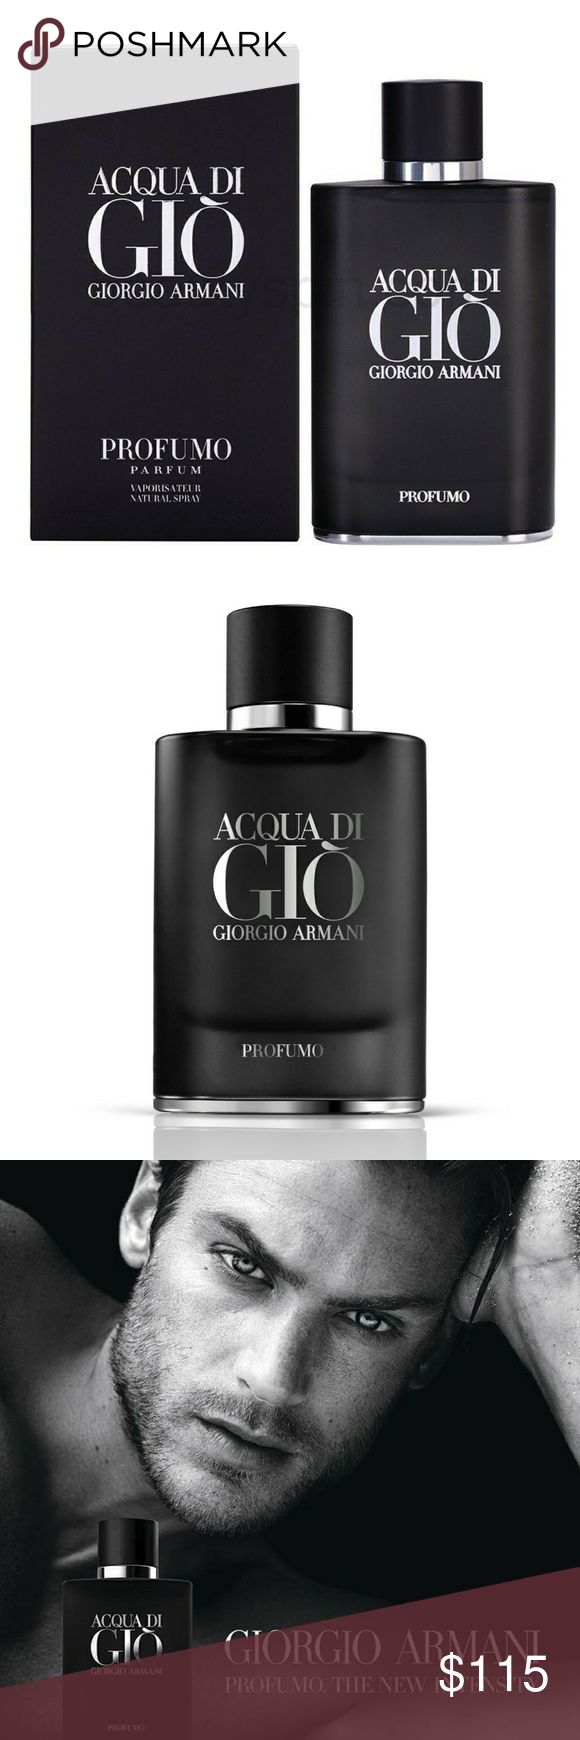 Acqua Di Gio Profumo x Giorgio Armani We are a store. 100% authentic or your money back. Let me know if your looking for something else so we can list it for you. Thanks.   Price is firm as these are new products.  Paco Rabbane   Giorgio Armani   Hugo Boss   Bulgari   Versace   Givenchy   Gucci   YSL   Burberry   Ralph Lauren   Dior   Dolce & Gabbana   Jean Paul   Coach   Creed   Marc Jacobs   Valentino   Vince Camuto   Jimmy Choo   Cartier   Lancome Giorgio Armani Other